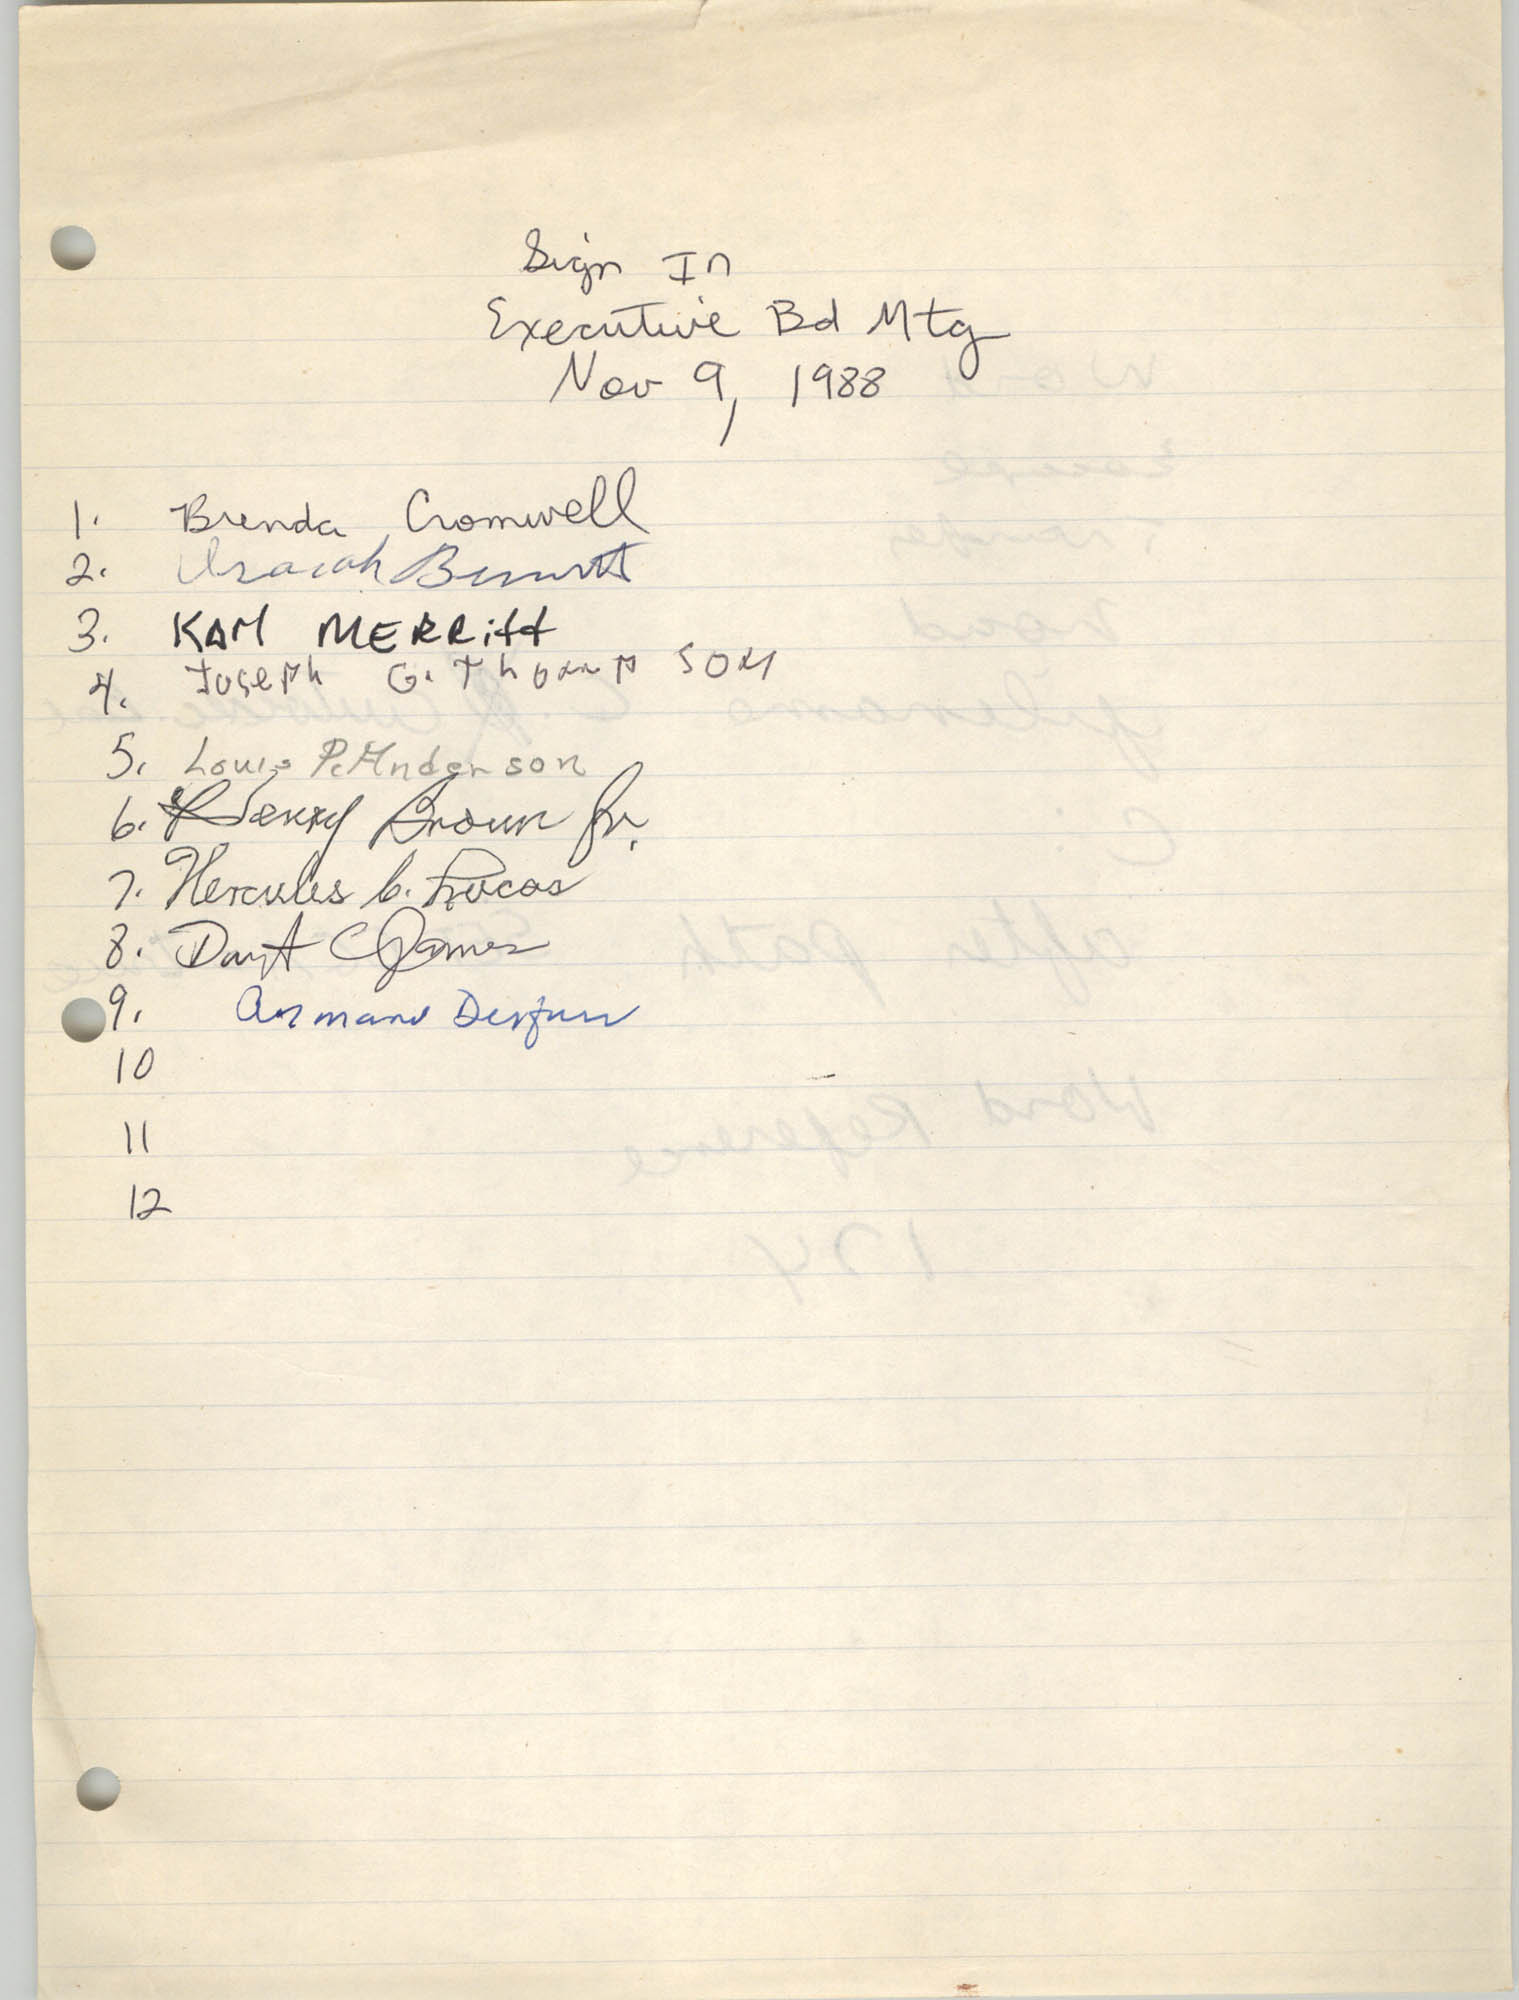 Sign-in Sheet, Charleston Branch of the NAACP, Executive Board Meeting, November 9, 1988